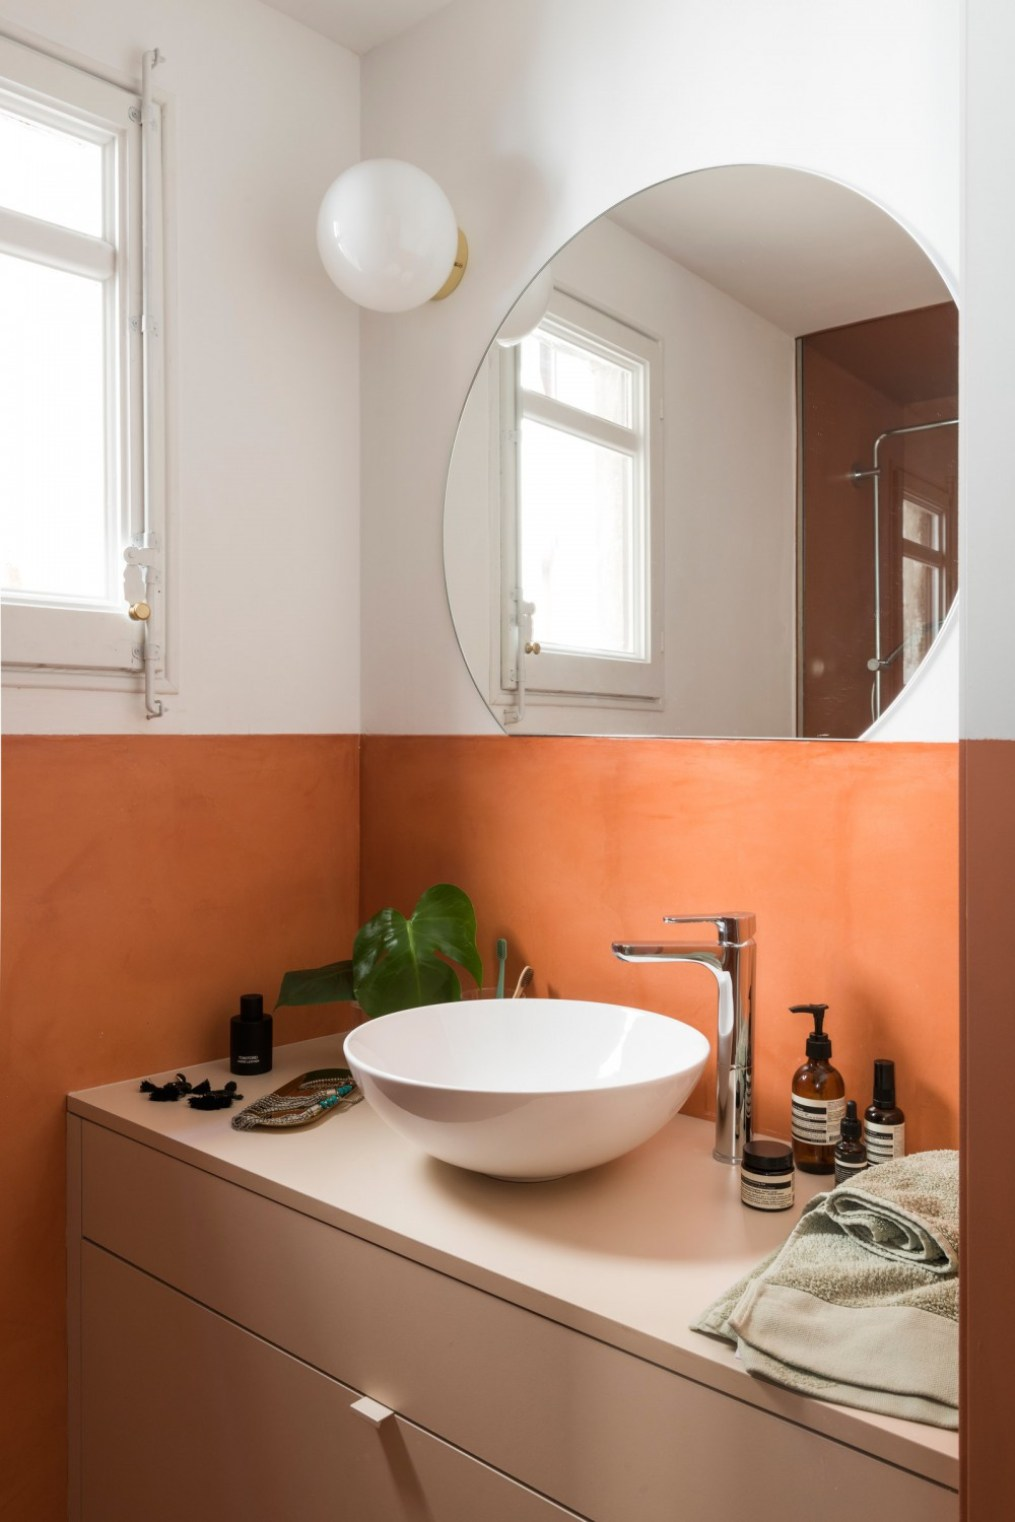 pThe bathroom has the same microcement feature as the kitchen backsplash and its terracotta and blush shades tie in with...